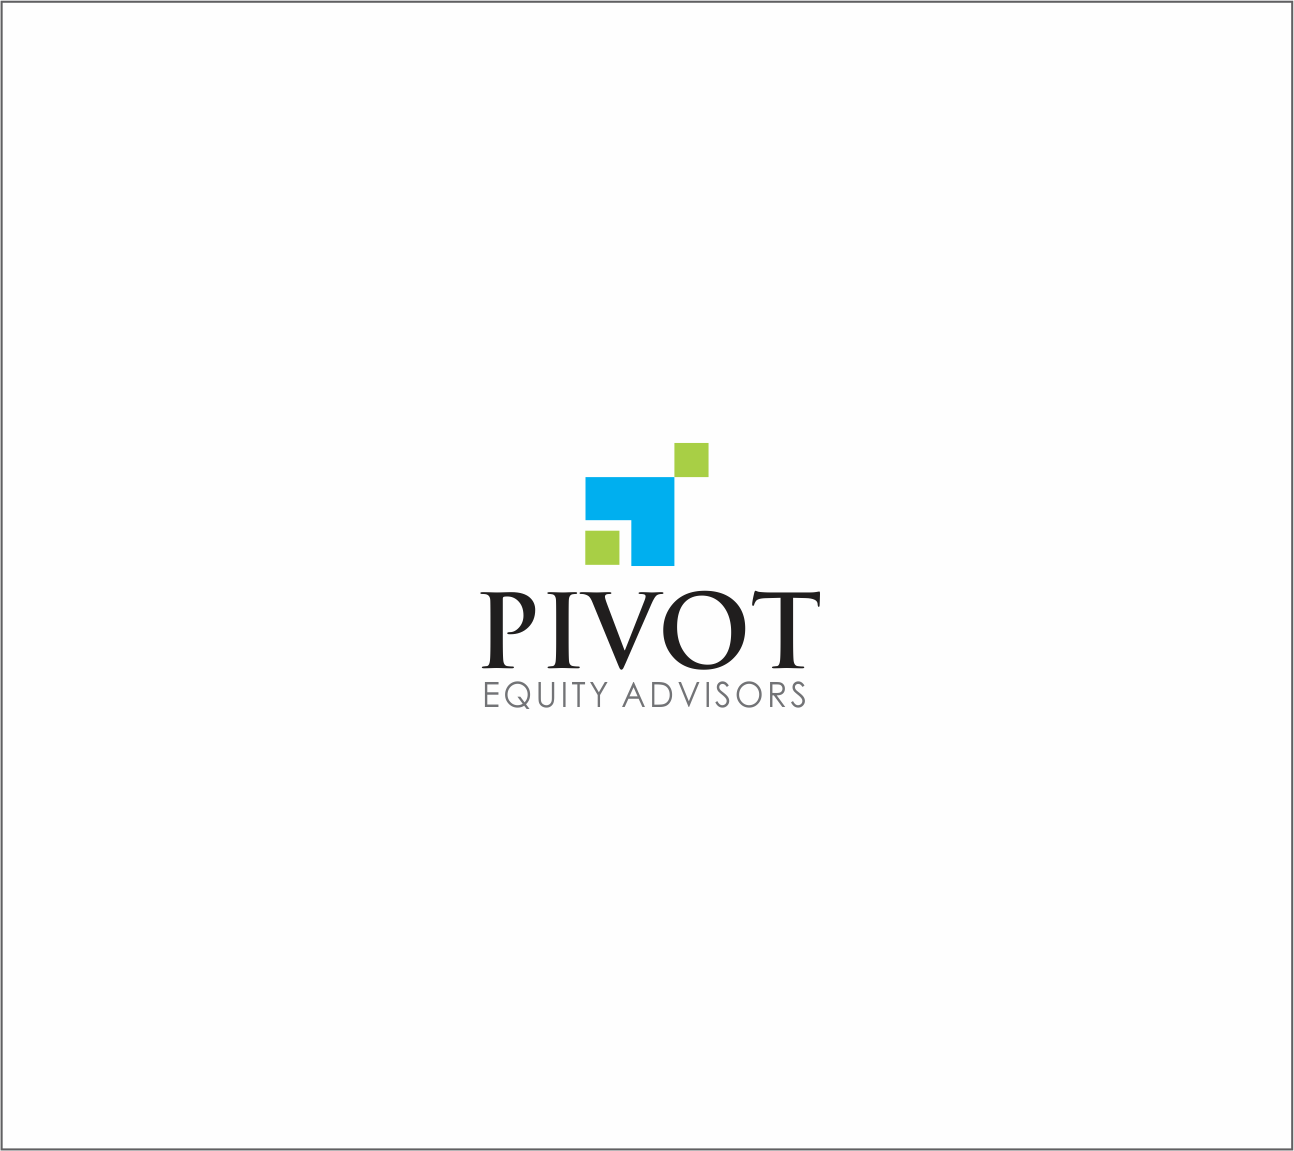 Logo Design by Armada Jamaluddin - Entry No. 28 in the Logo Design Contest Unique Logo Design Wanted for Pivot Equity Advisors.